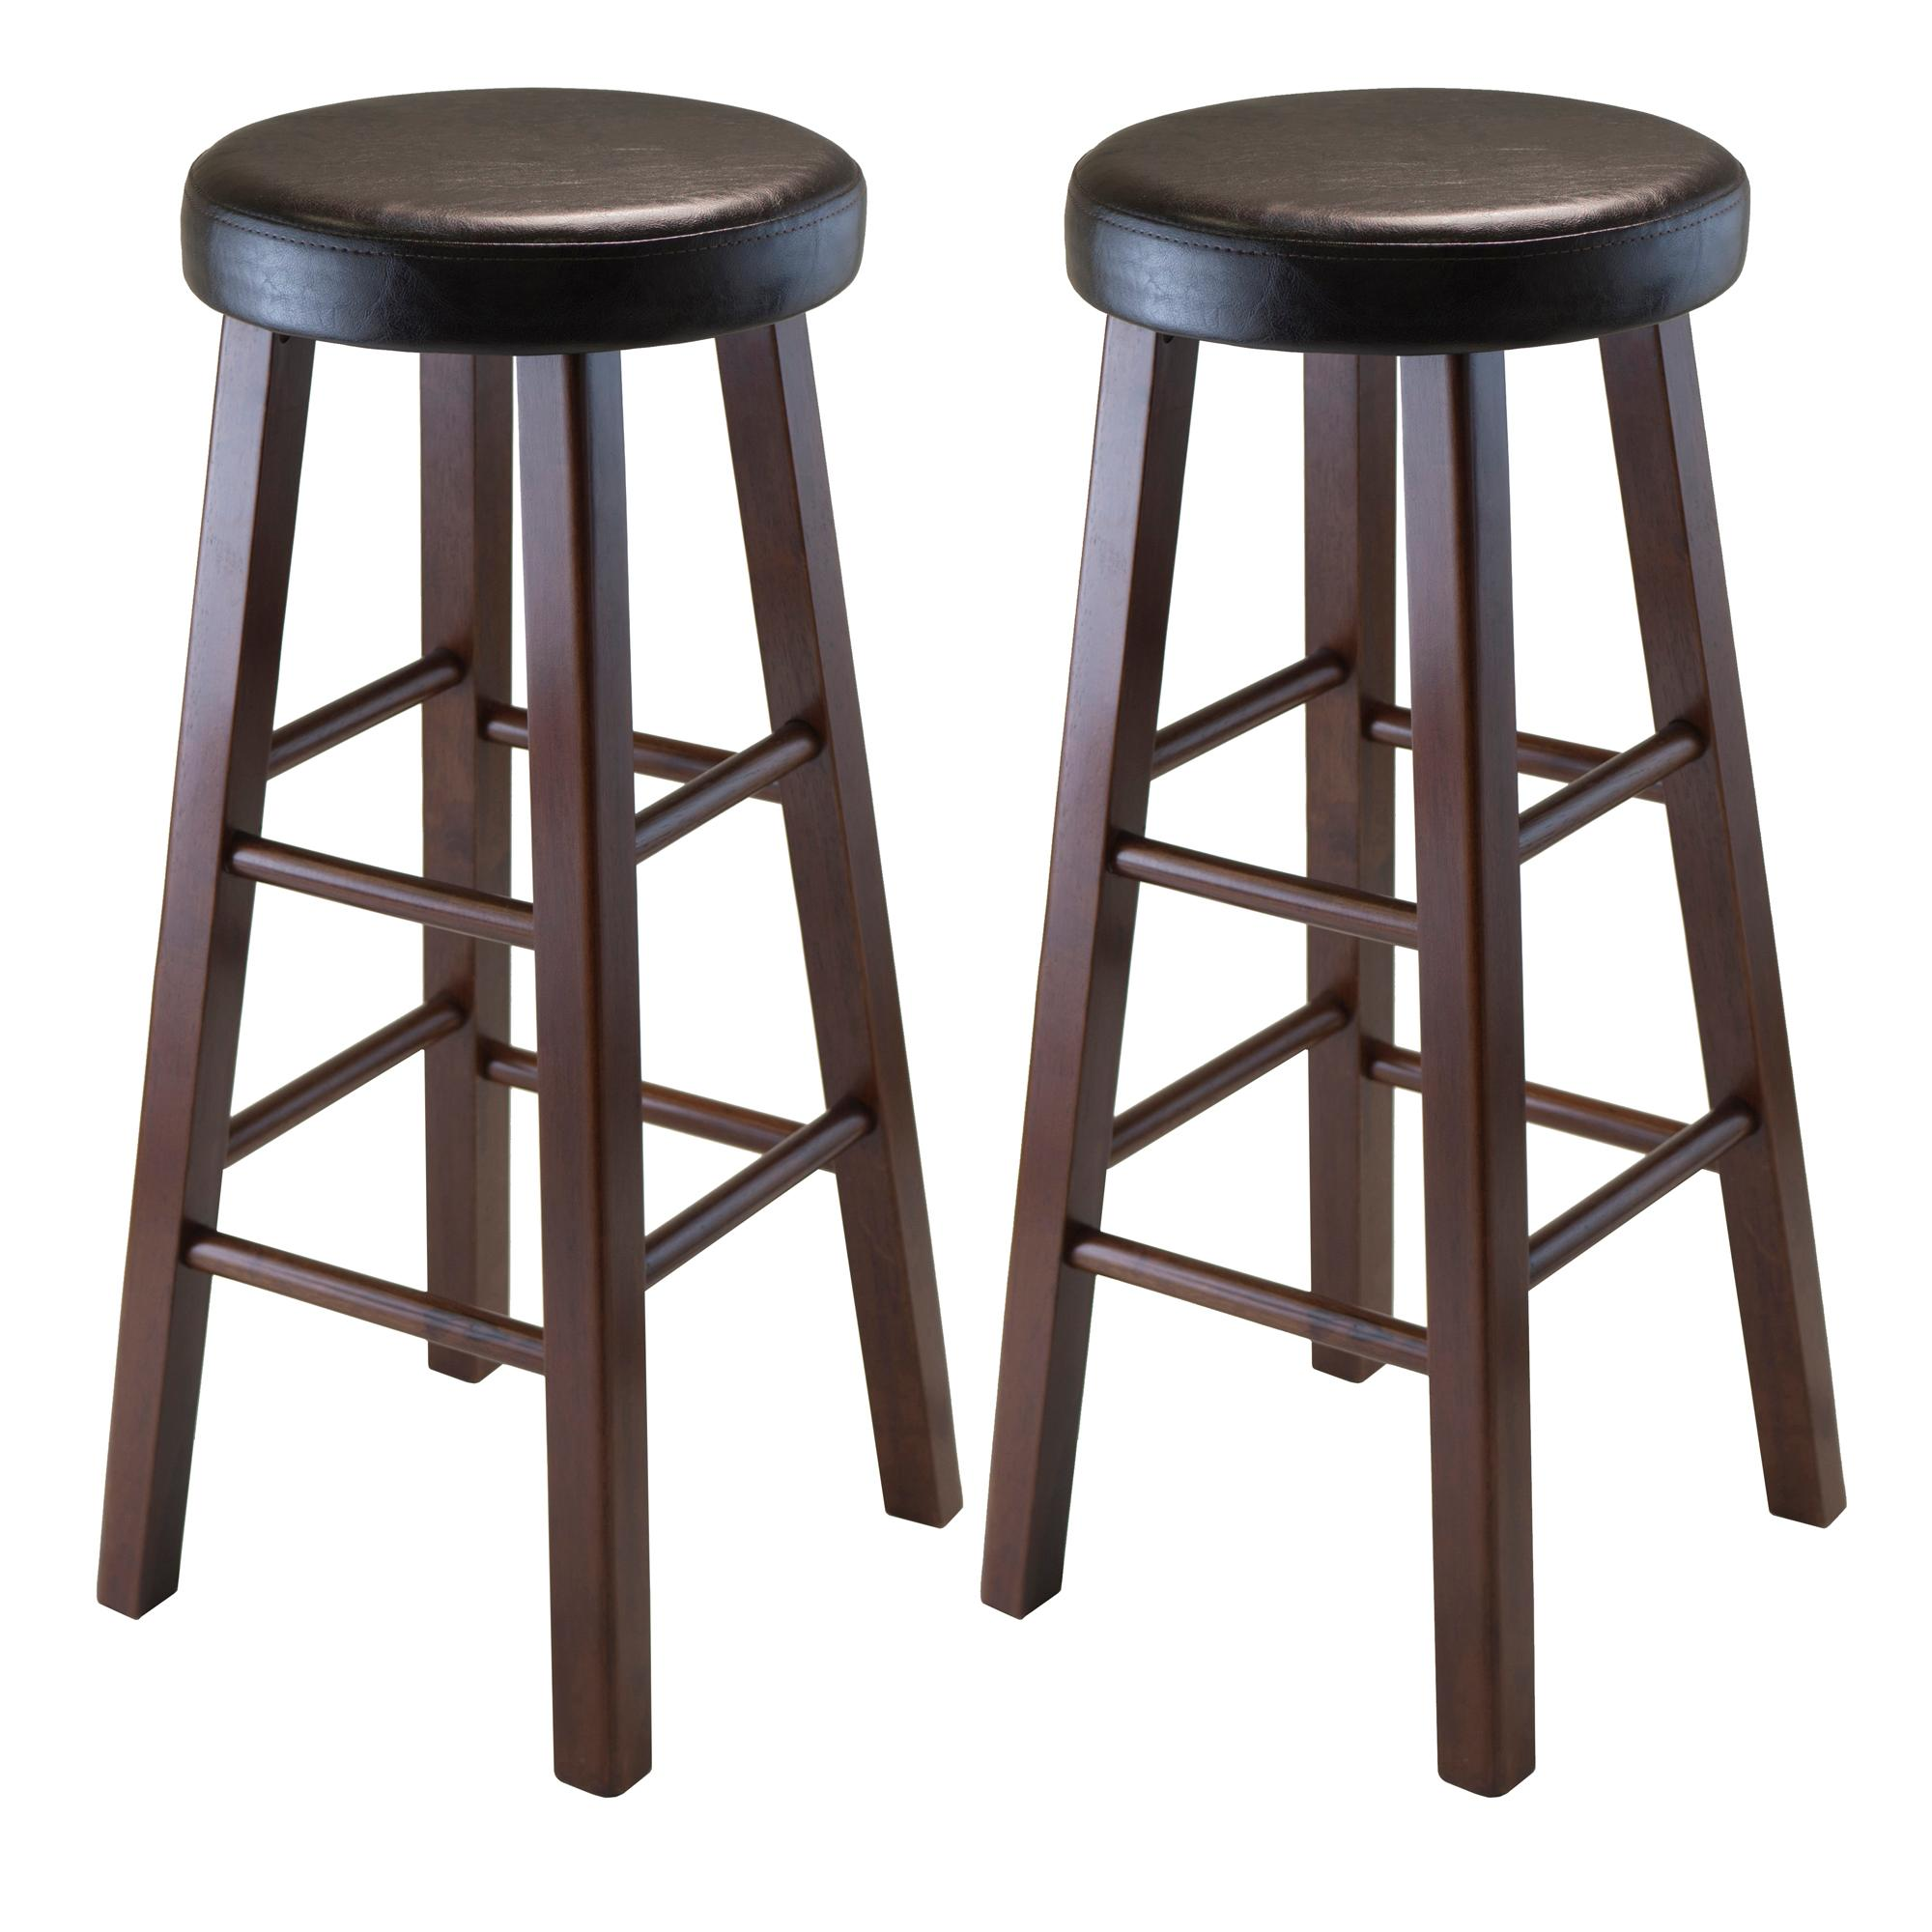 by counter discount stool hall bar sofield mcguire made bill dering stools pin to buy furniture cocoon contemporary barstools